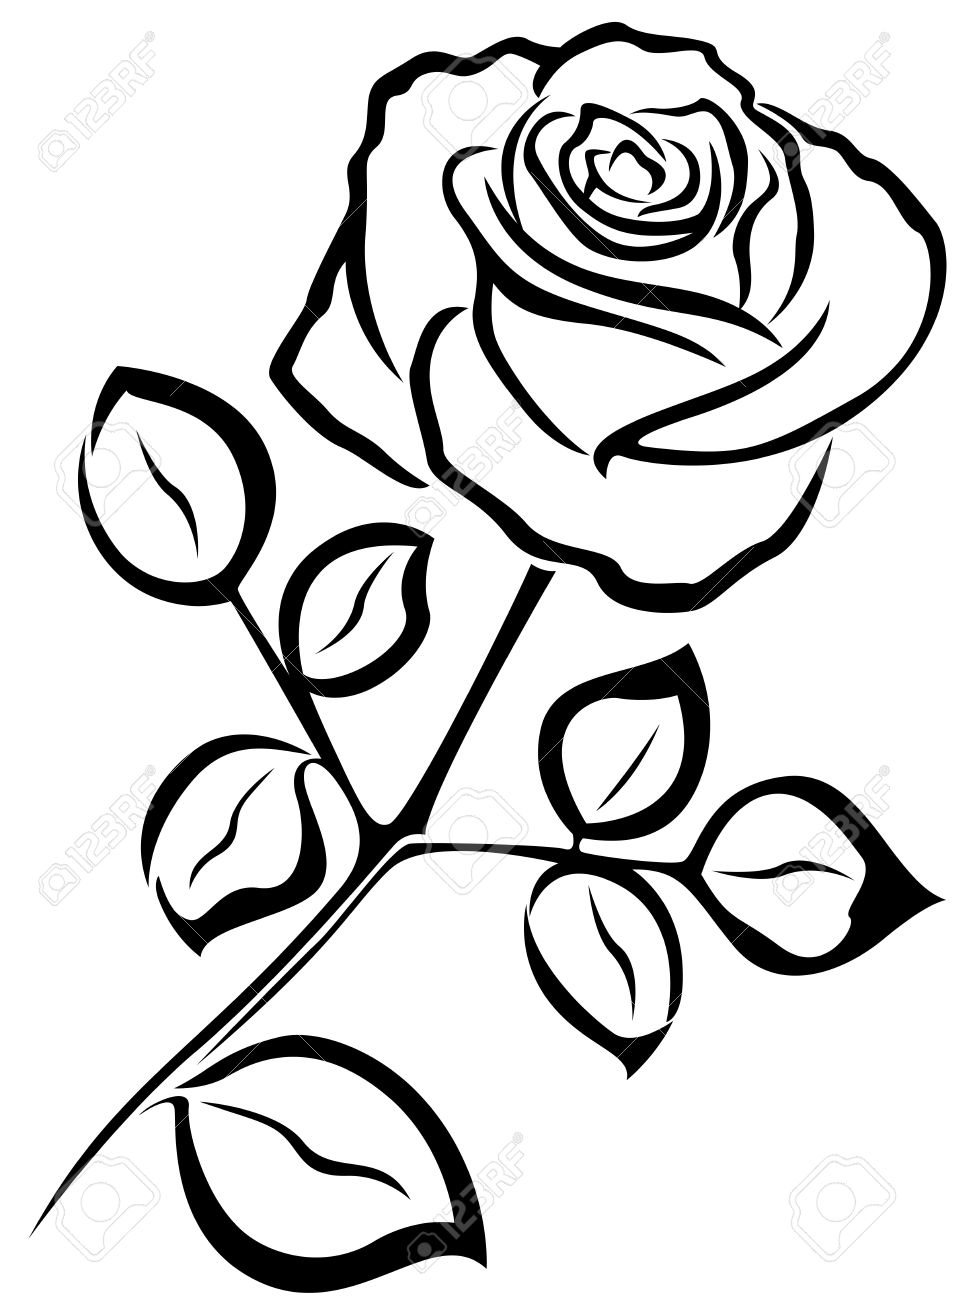 Rose drawing black and white at getdrawings free for personal 975x1300 black vector outline of single rose flower isolated on a white mightylinksfo